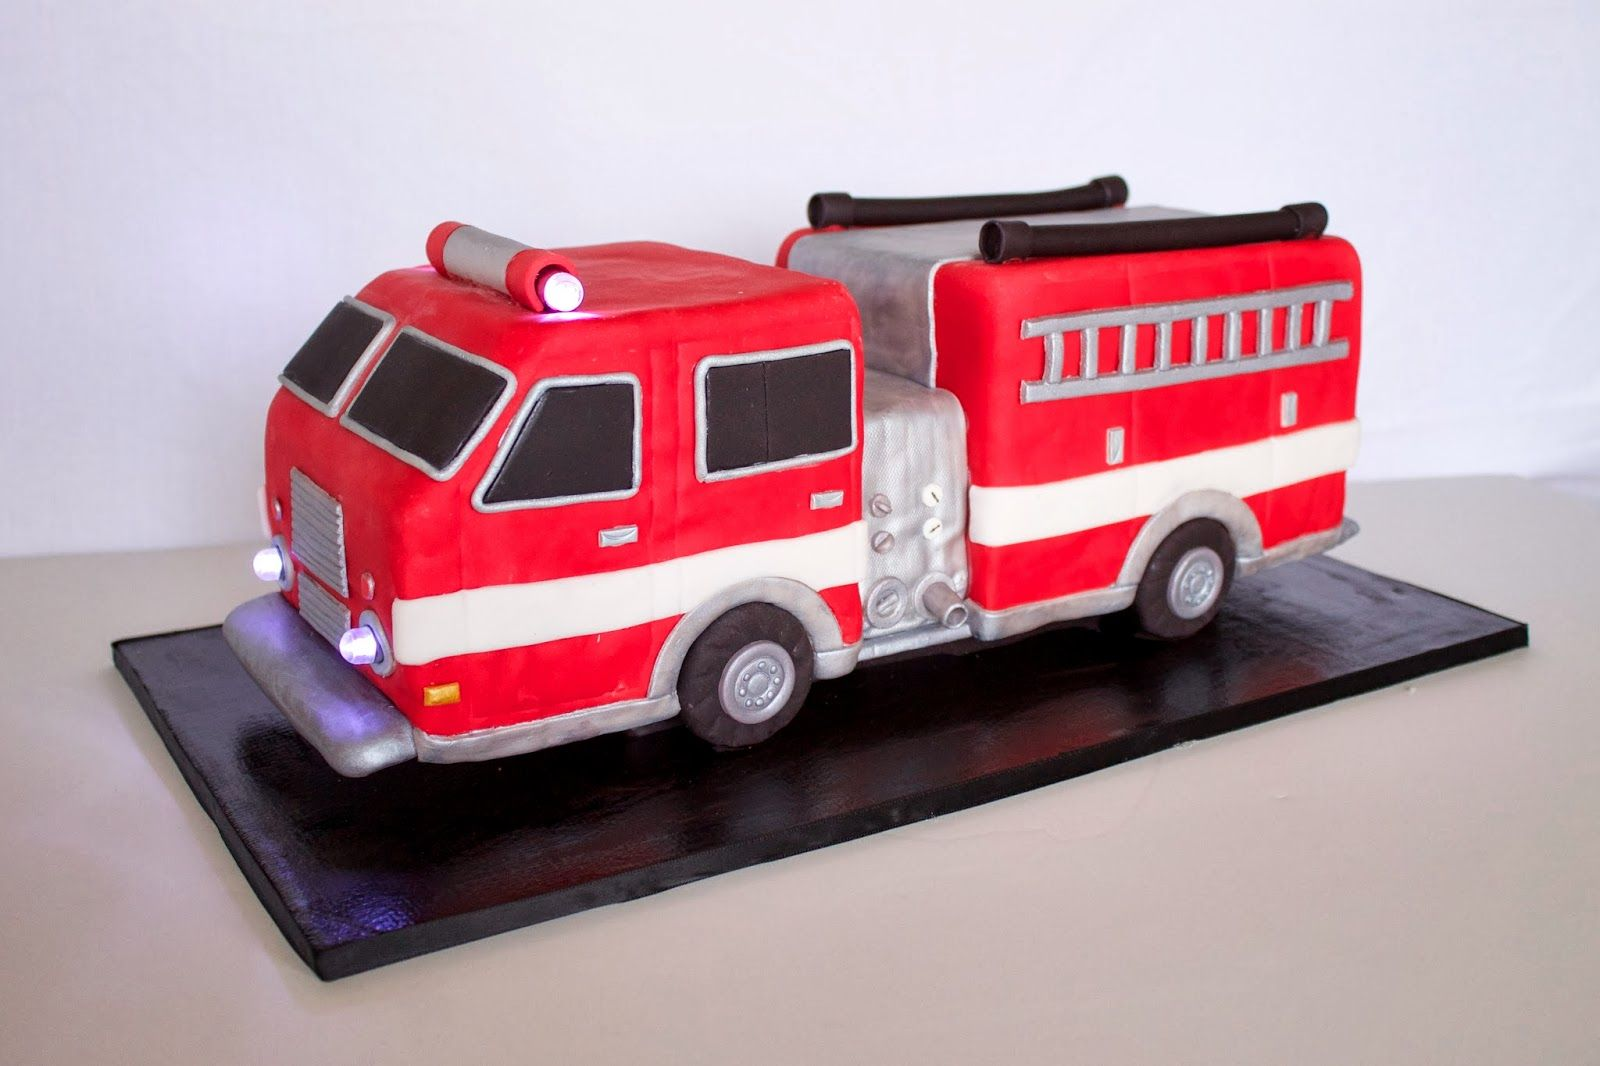 Custom Cakes Gourmet Sweets 3d Fire Truck Cake Tutorial Firetruck Cake Fireman Cake Fire Engine Cake